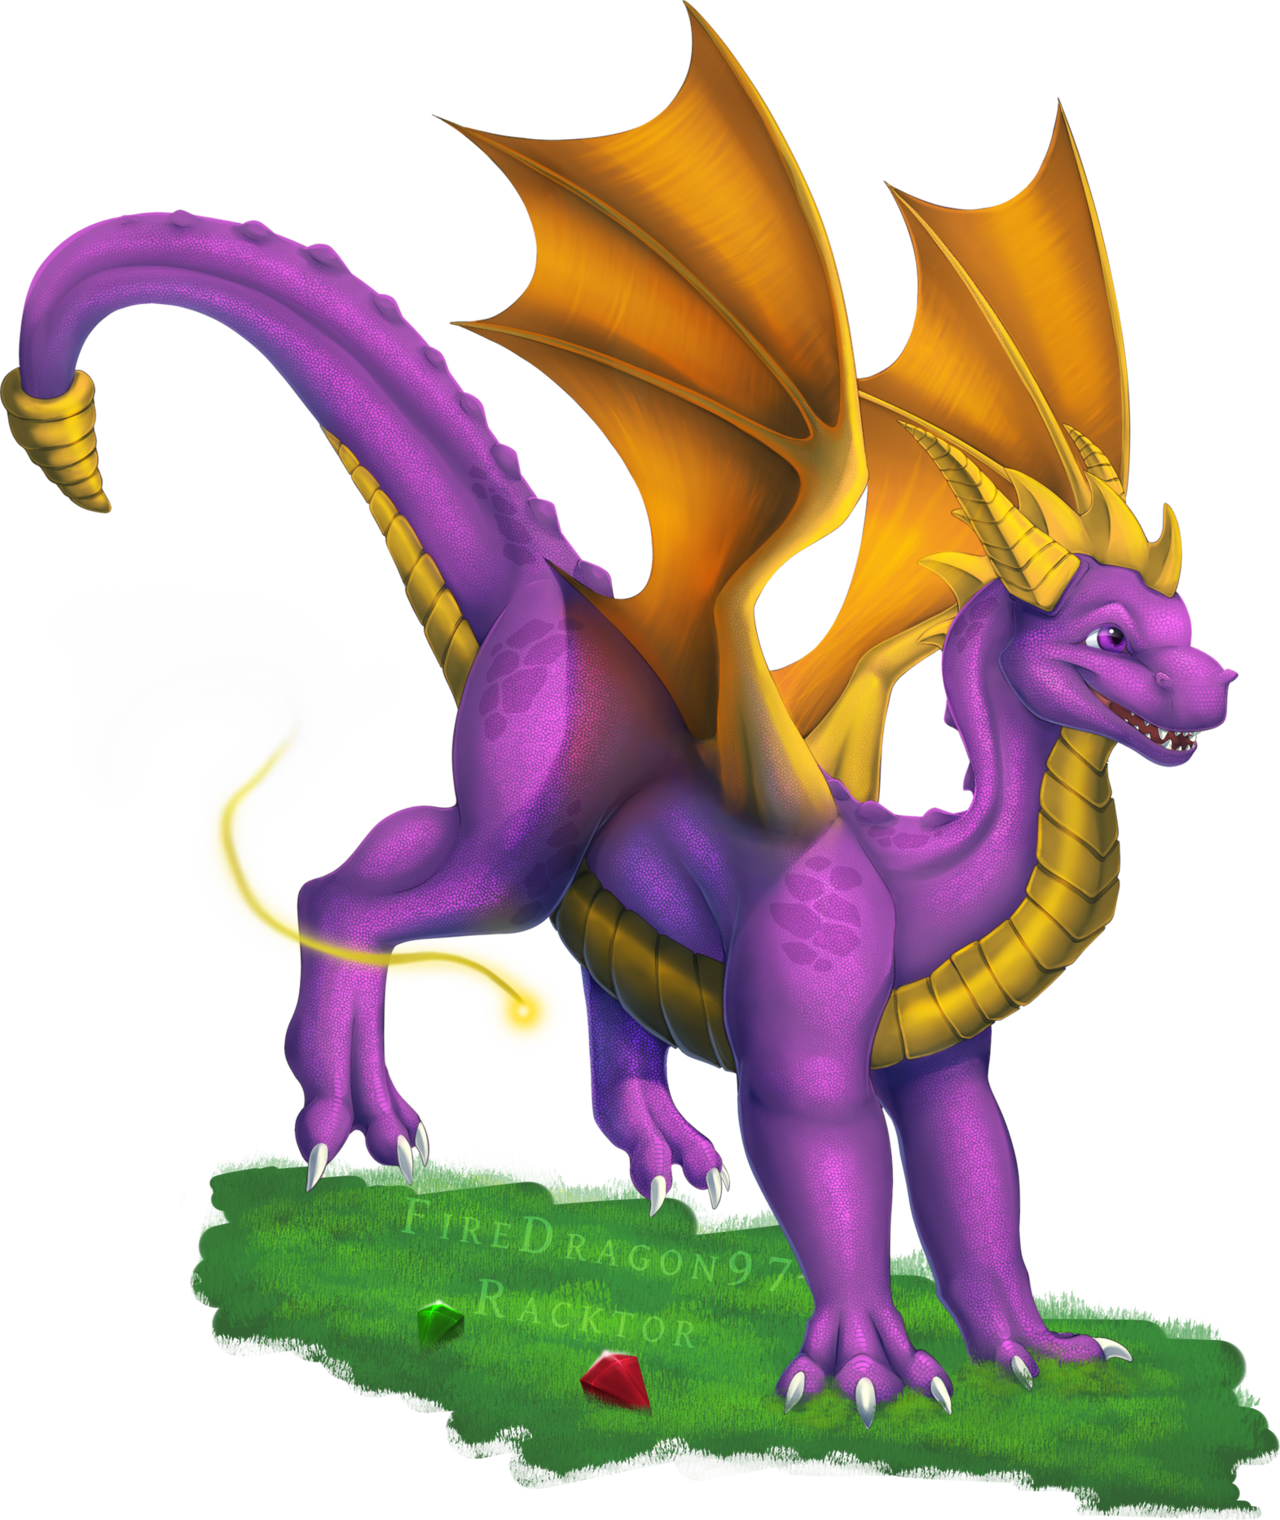 Spyro more in excitement. Excited clipart excitment